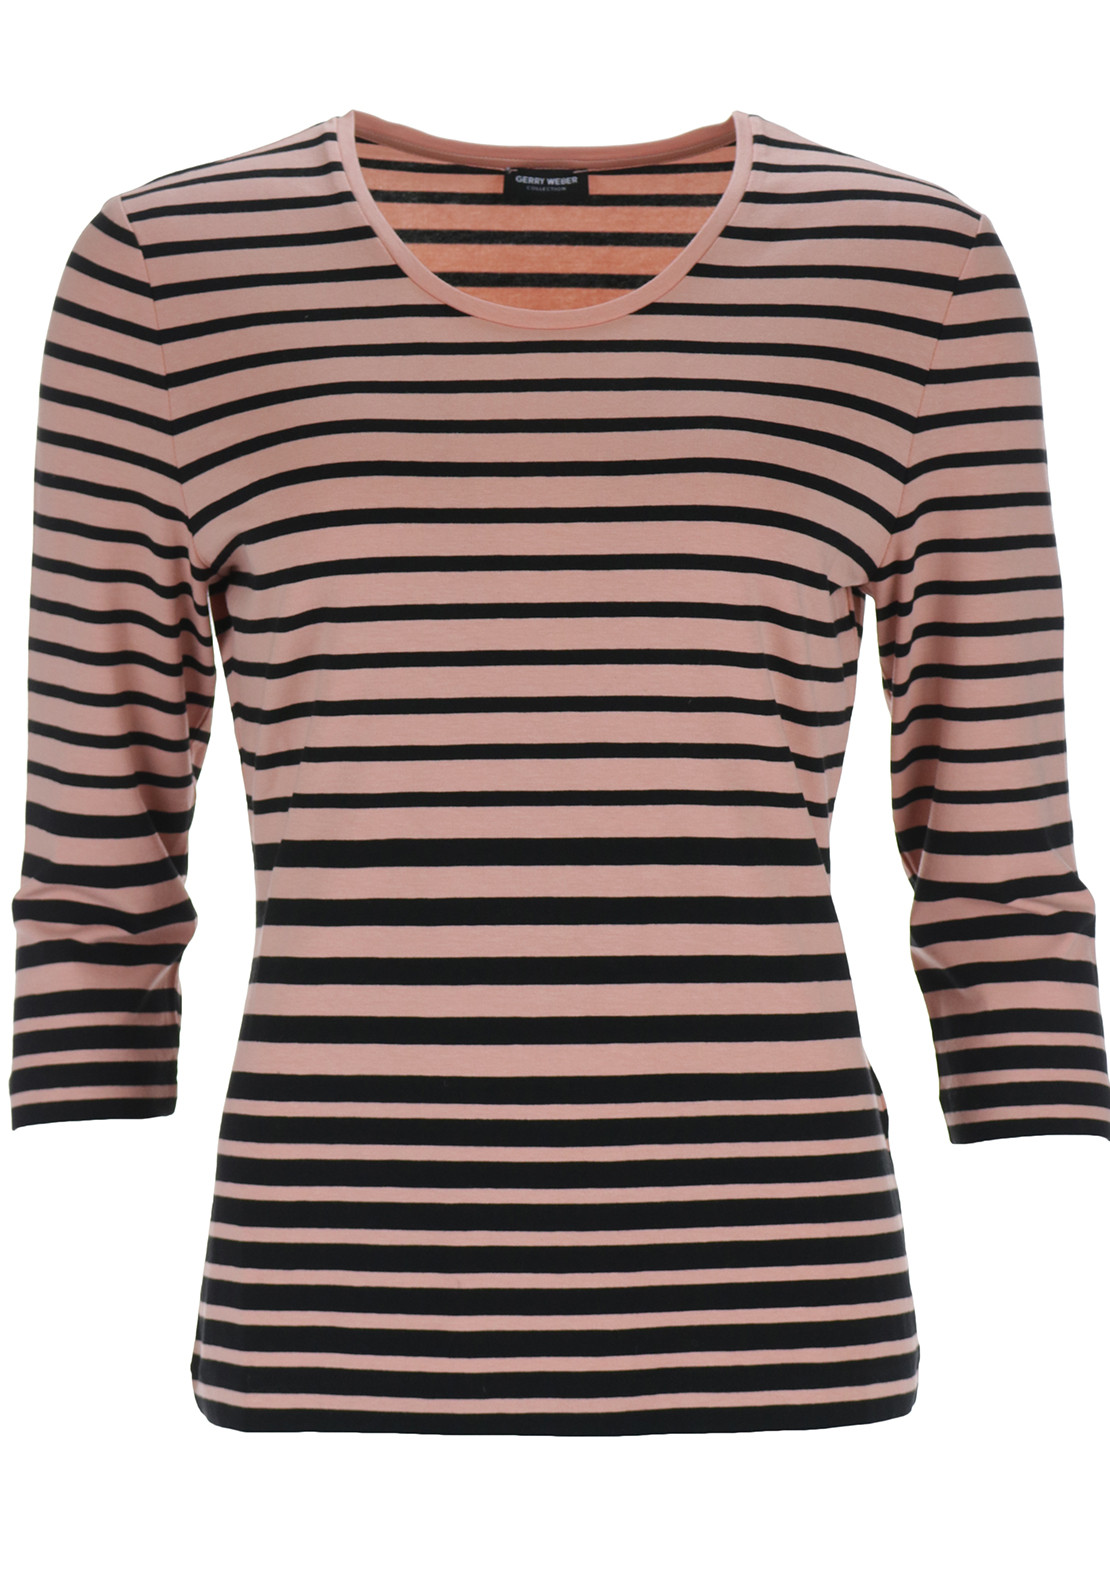 Gerry Weber Striped Cropped Sleeve Top, Peach & Black